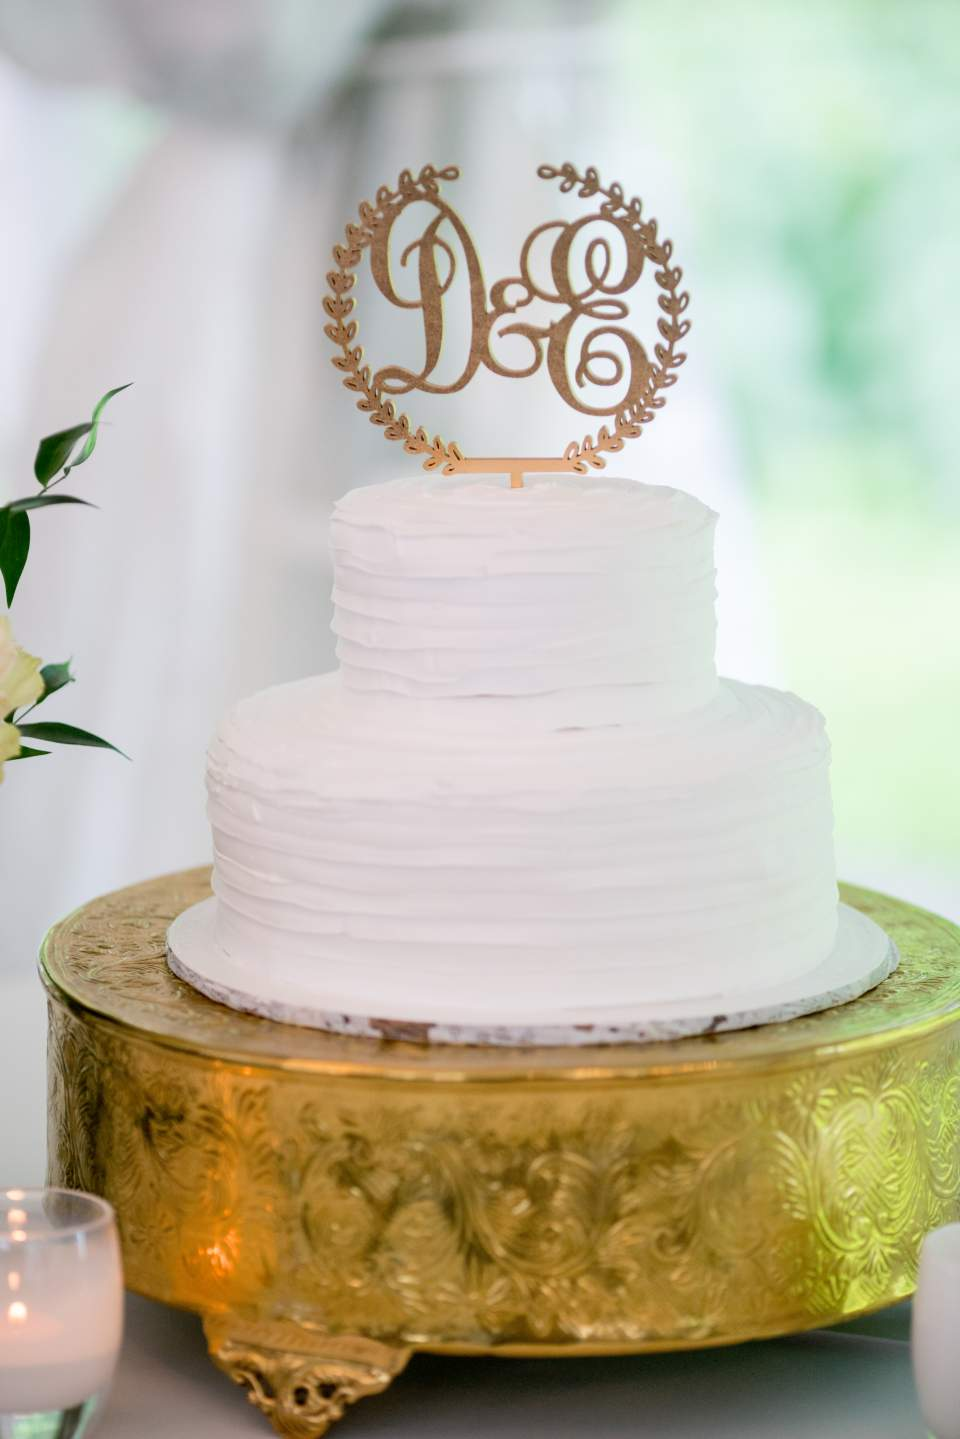 classic white wedding cake with monogram cake topper